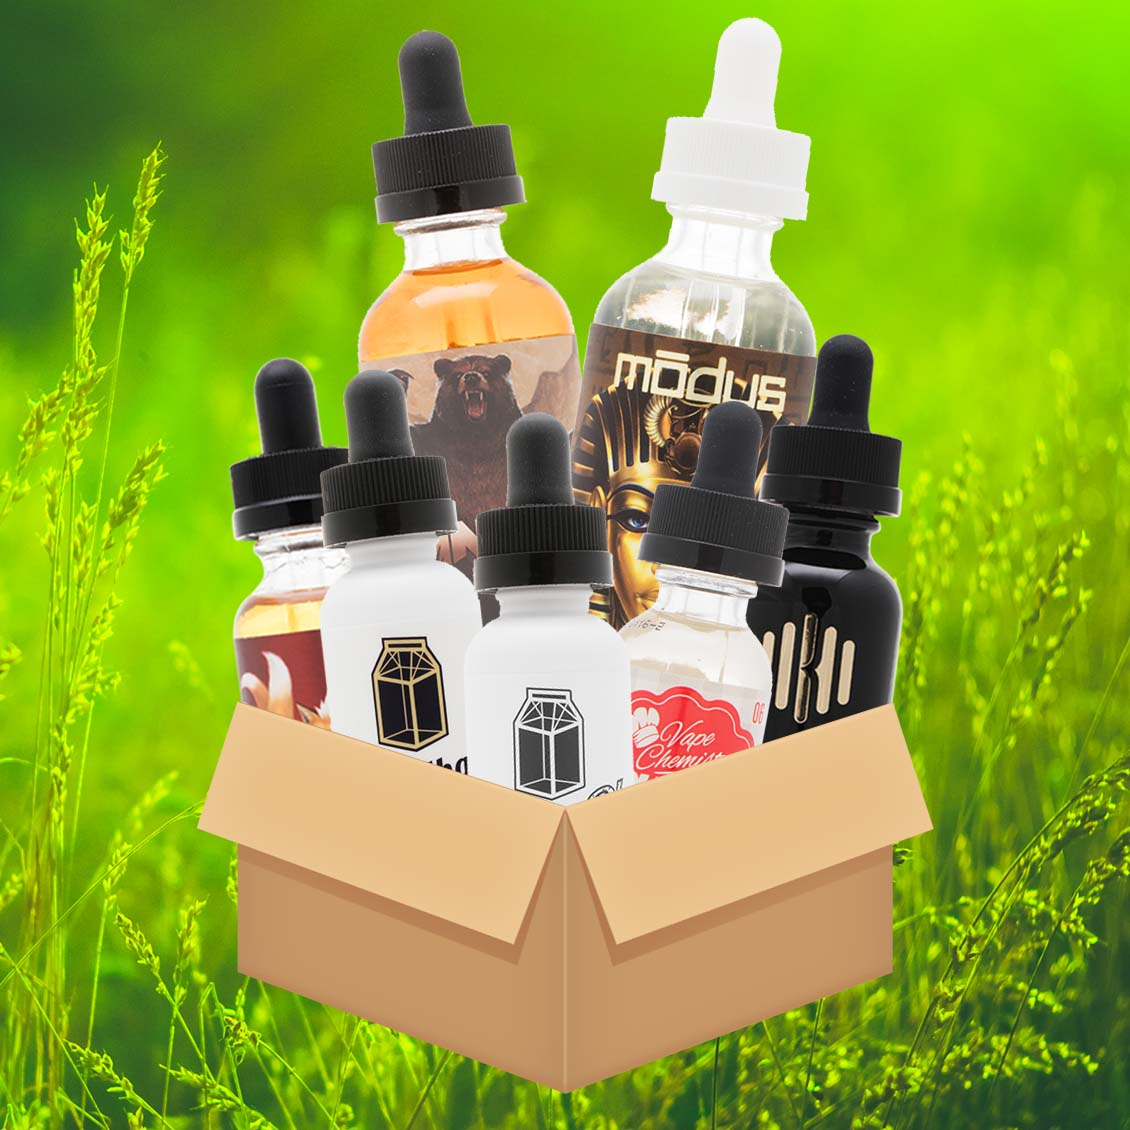 Premium Variety Bundle w/ ANML Unleashed, Modus, Milkman and More - 300mL! Photo